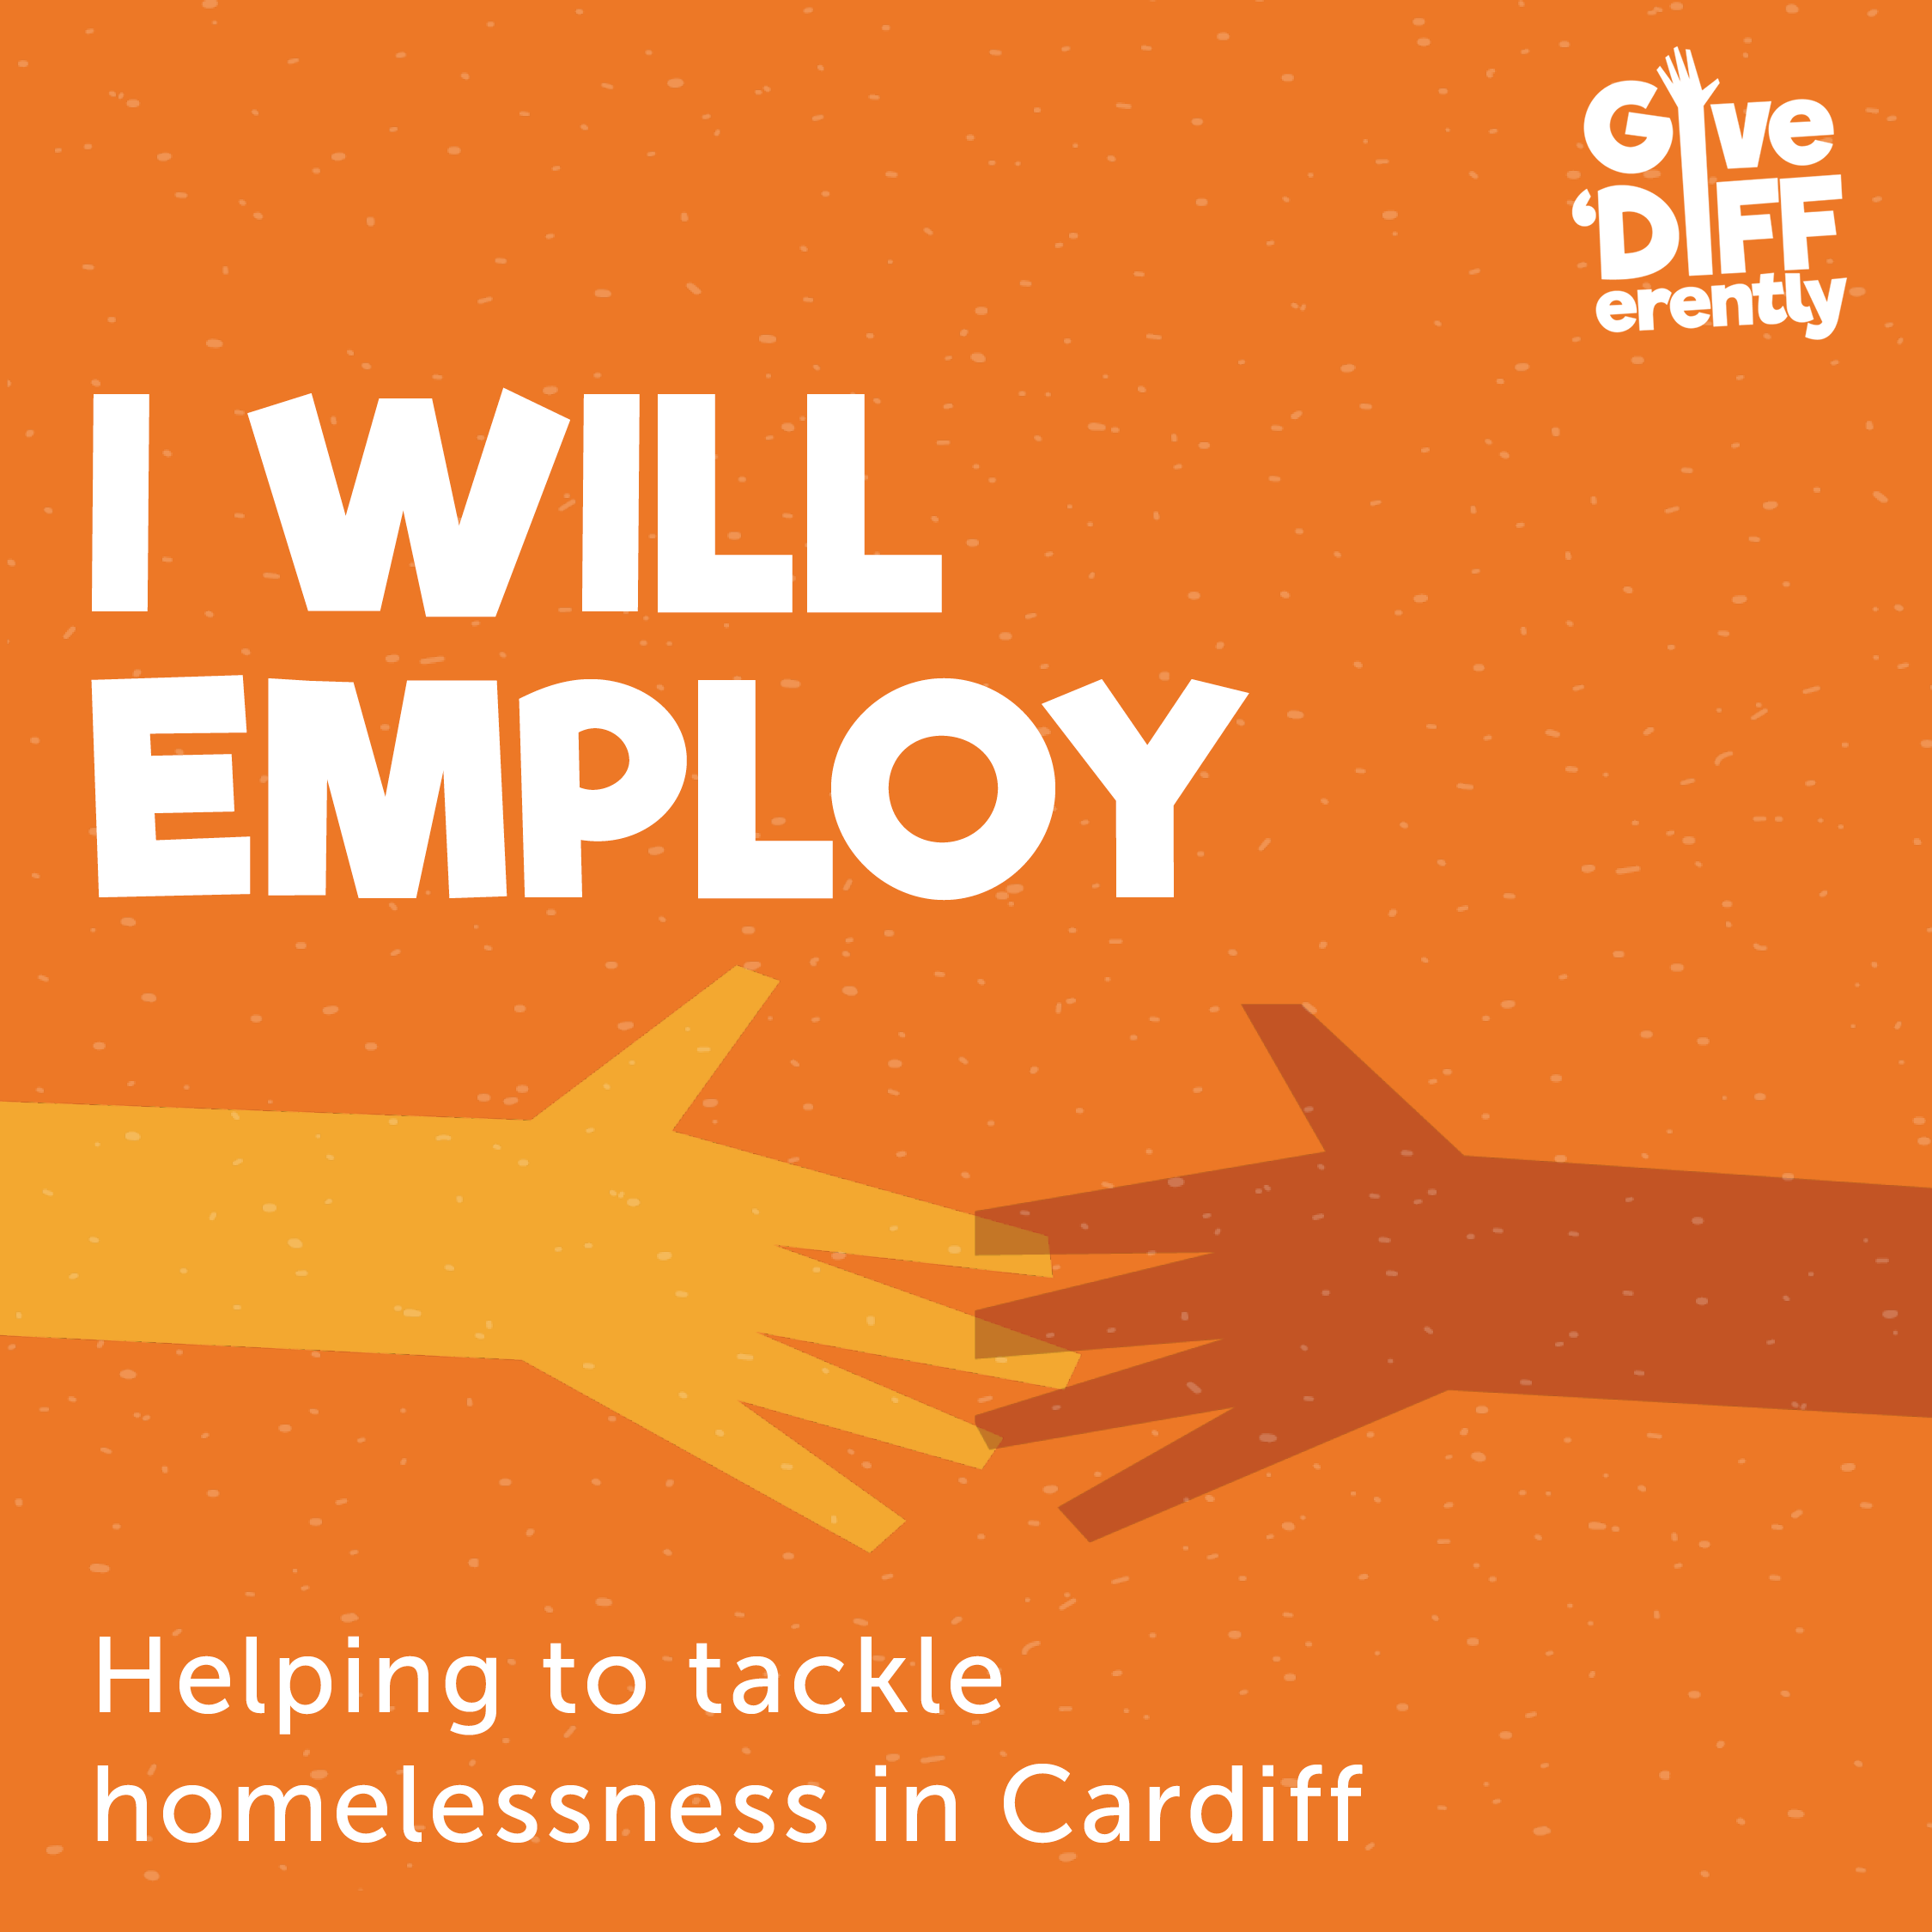 https://www.forcardiff.com/givedifferently/wp-content/uploads/2019/02/PLEDGES3.png